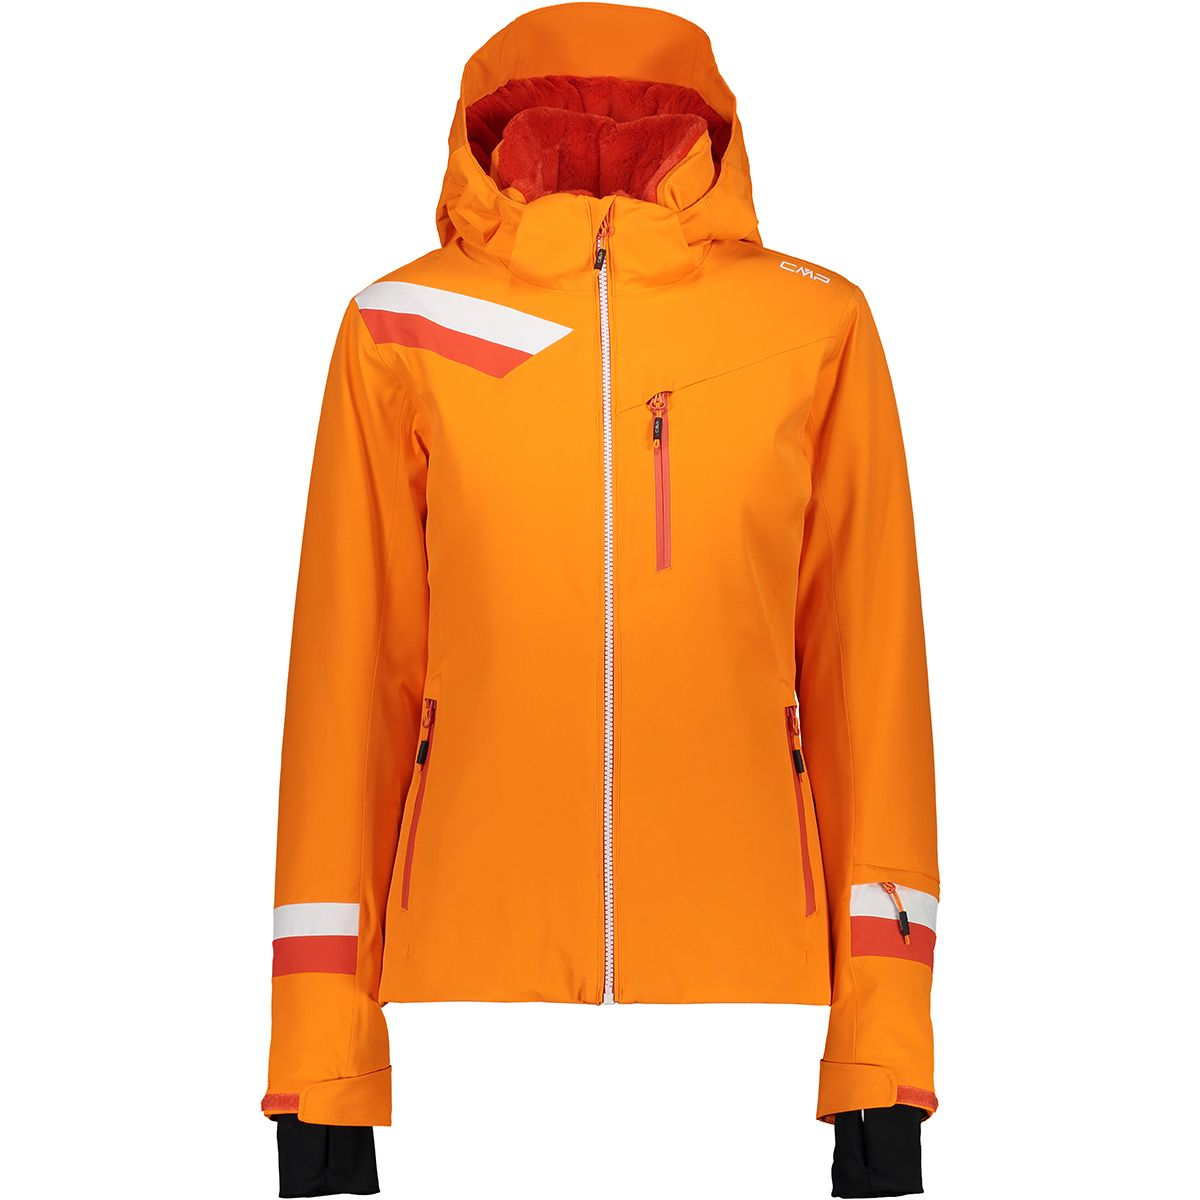 CMP Damen Stretch Zip Jacke (Größe XS, Orange) | Skijacken > Damen